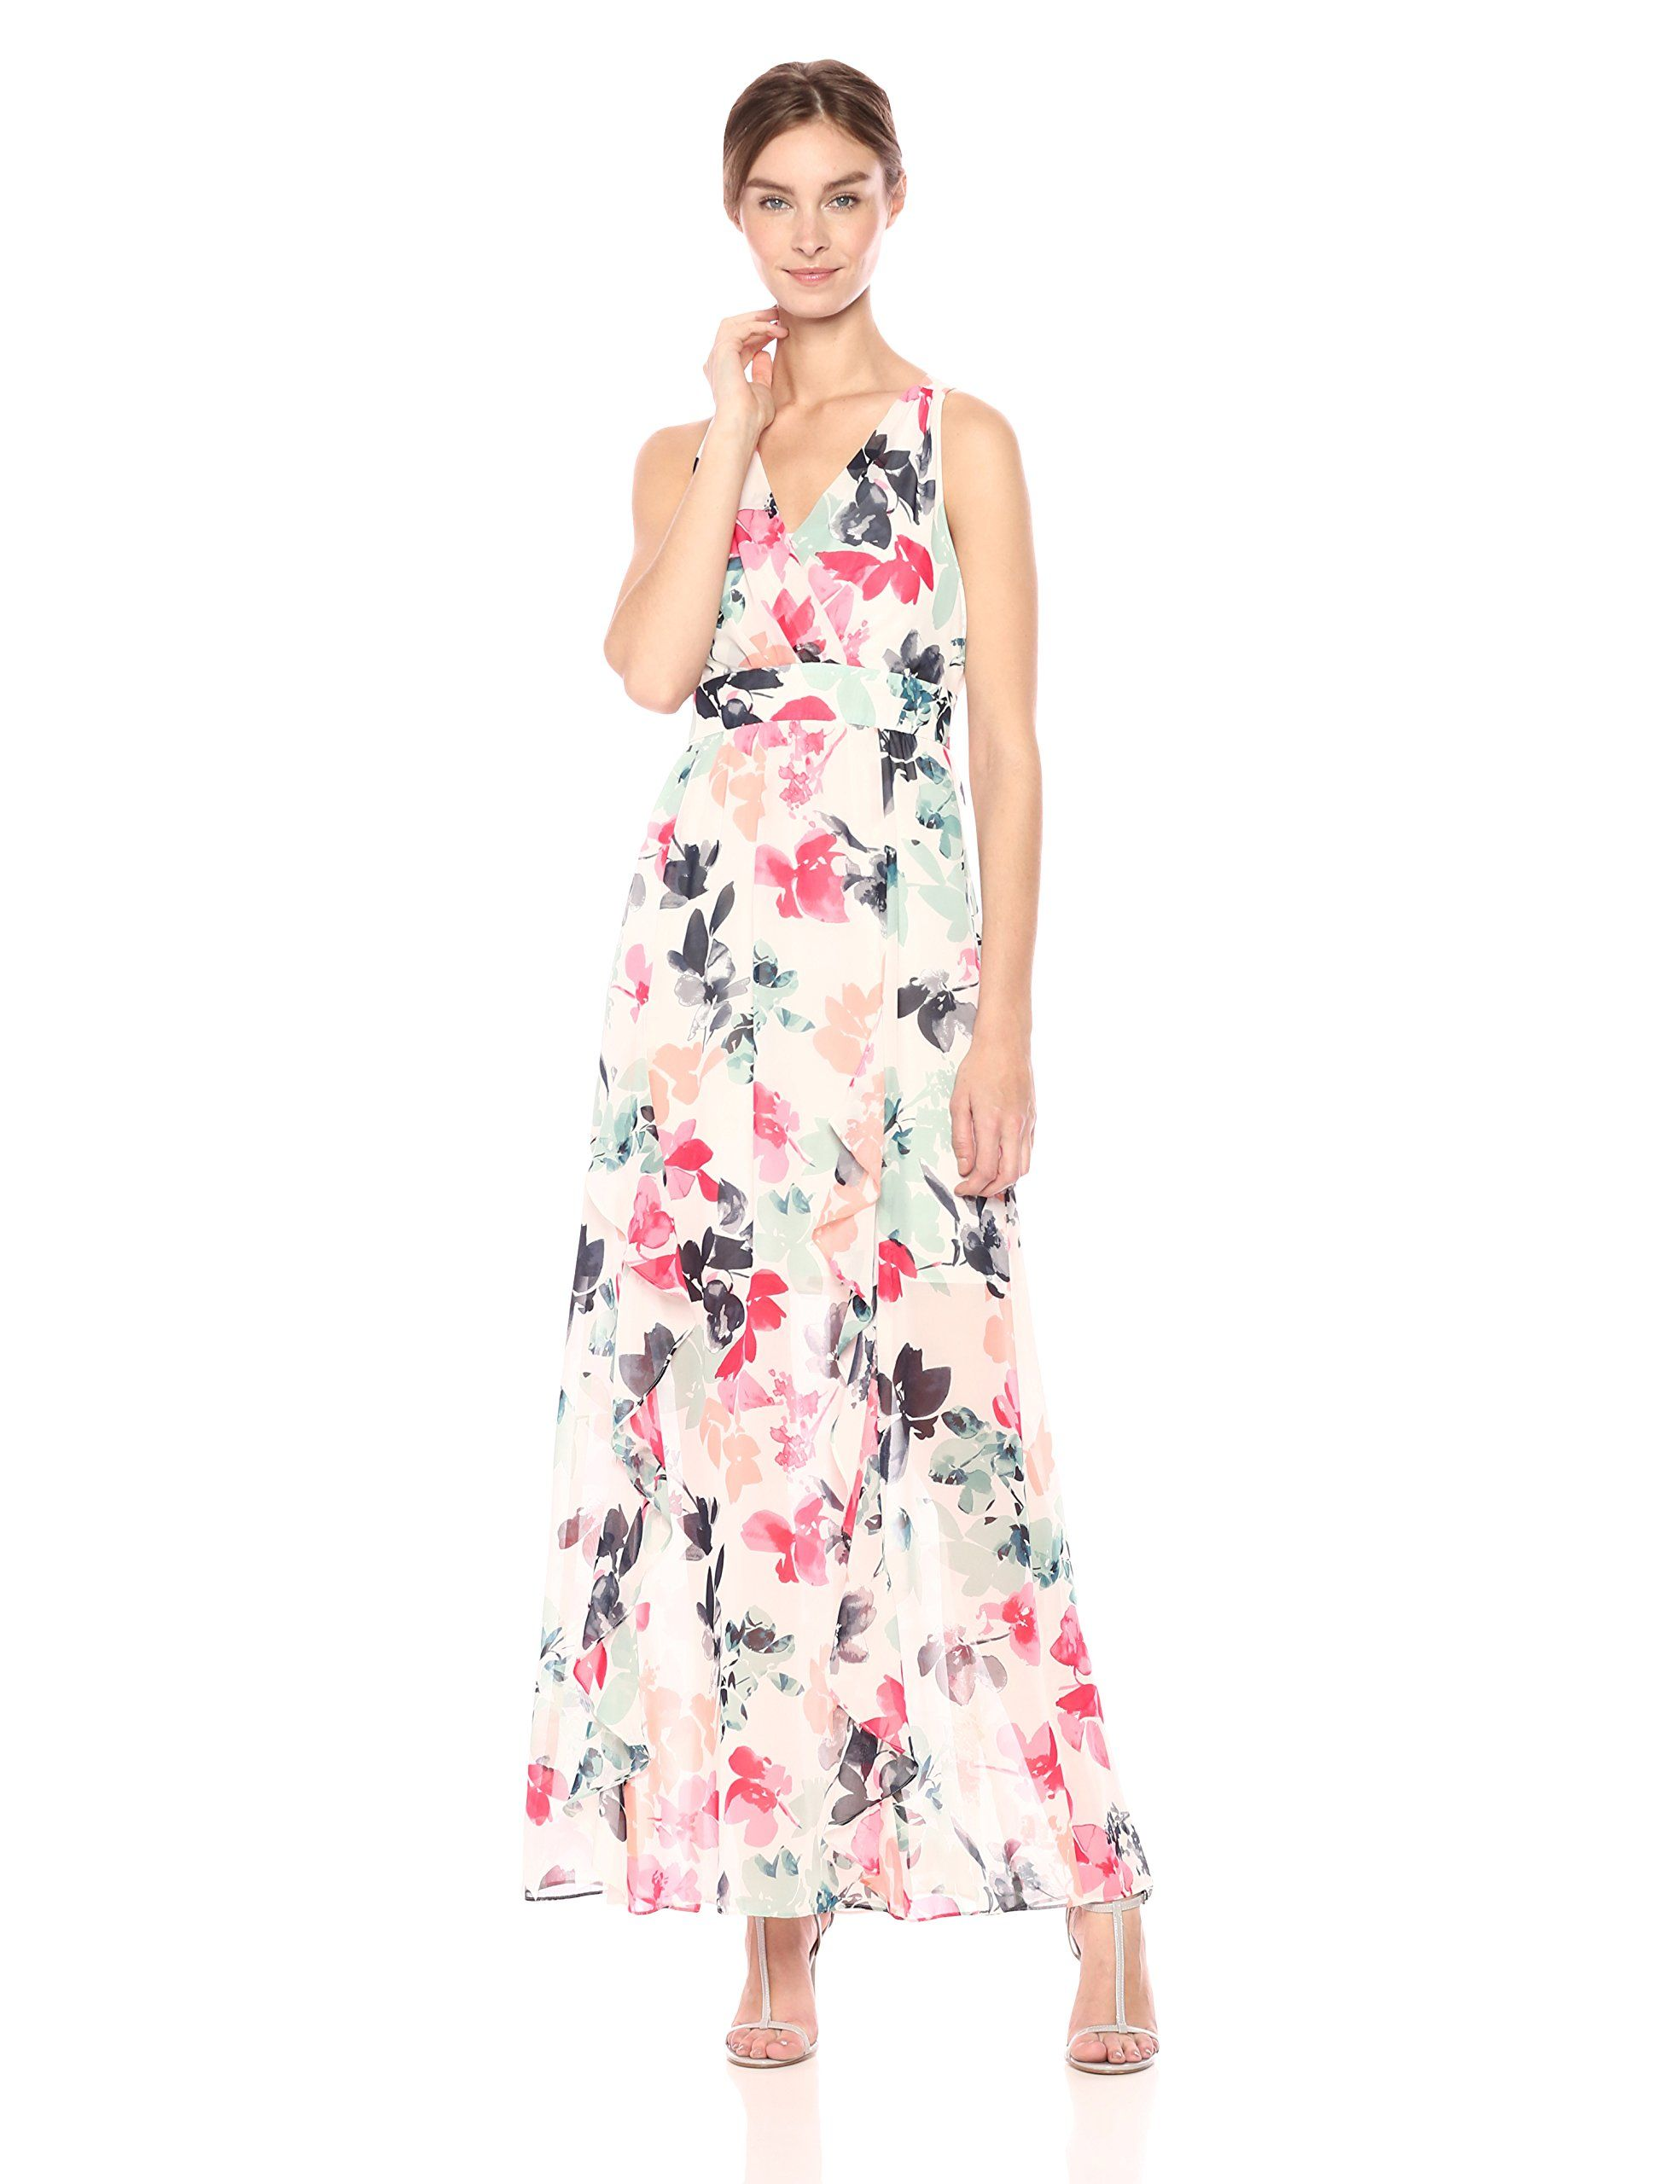 Vince Camuto Womens Printed Chiffon In 2021 Print Chiffon Maxi Dress Maxi Dress Chiffon Maxi Dress [ 2560 x 1969 Pixel ]